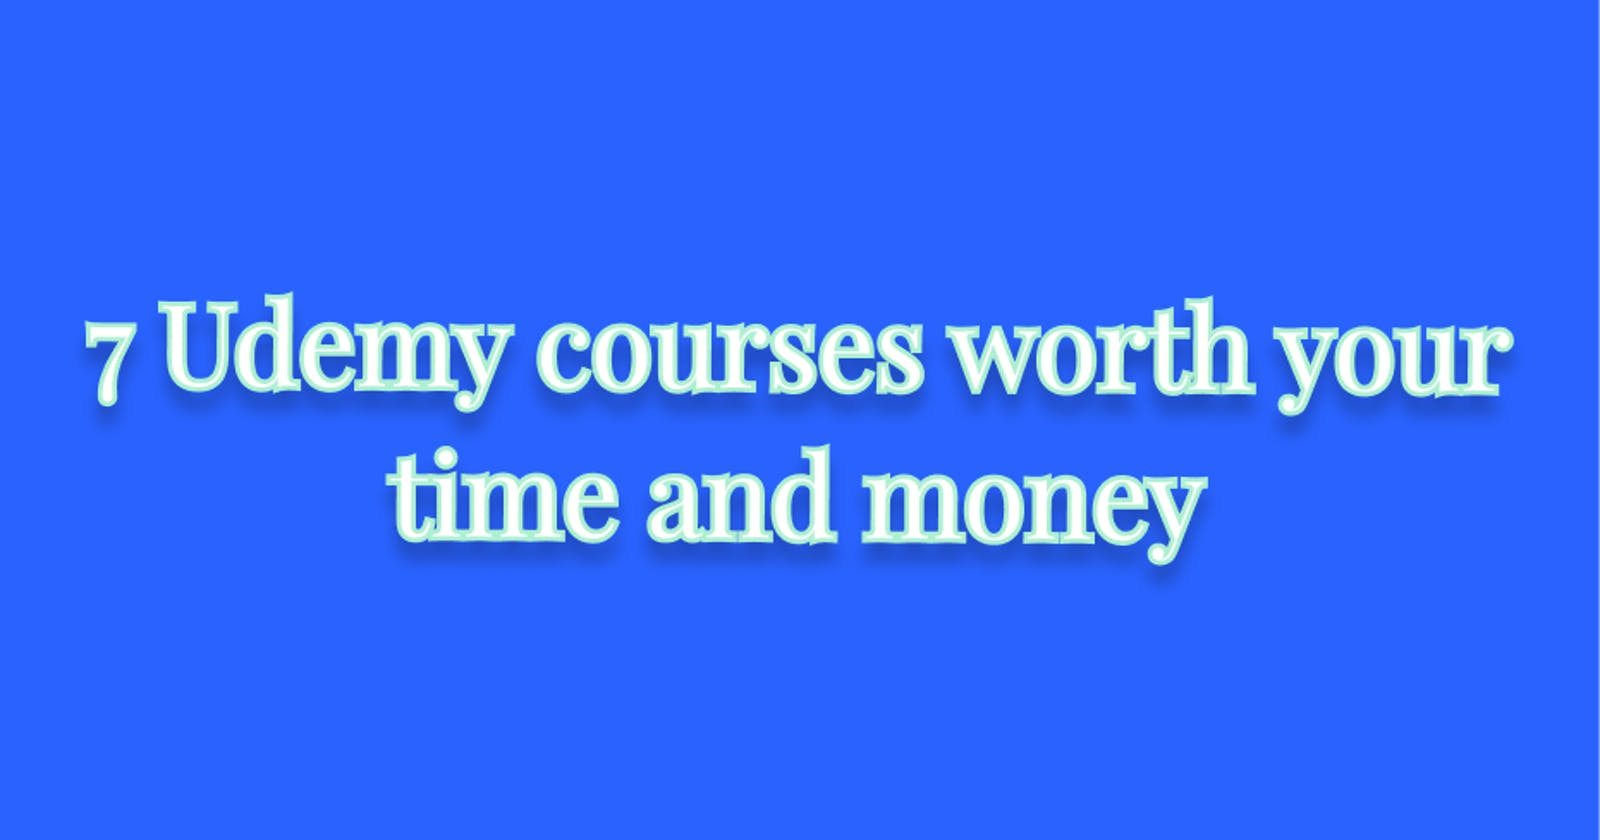 7 Udemy courses worth your time and money